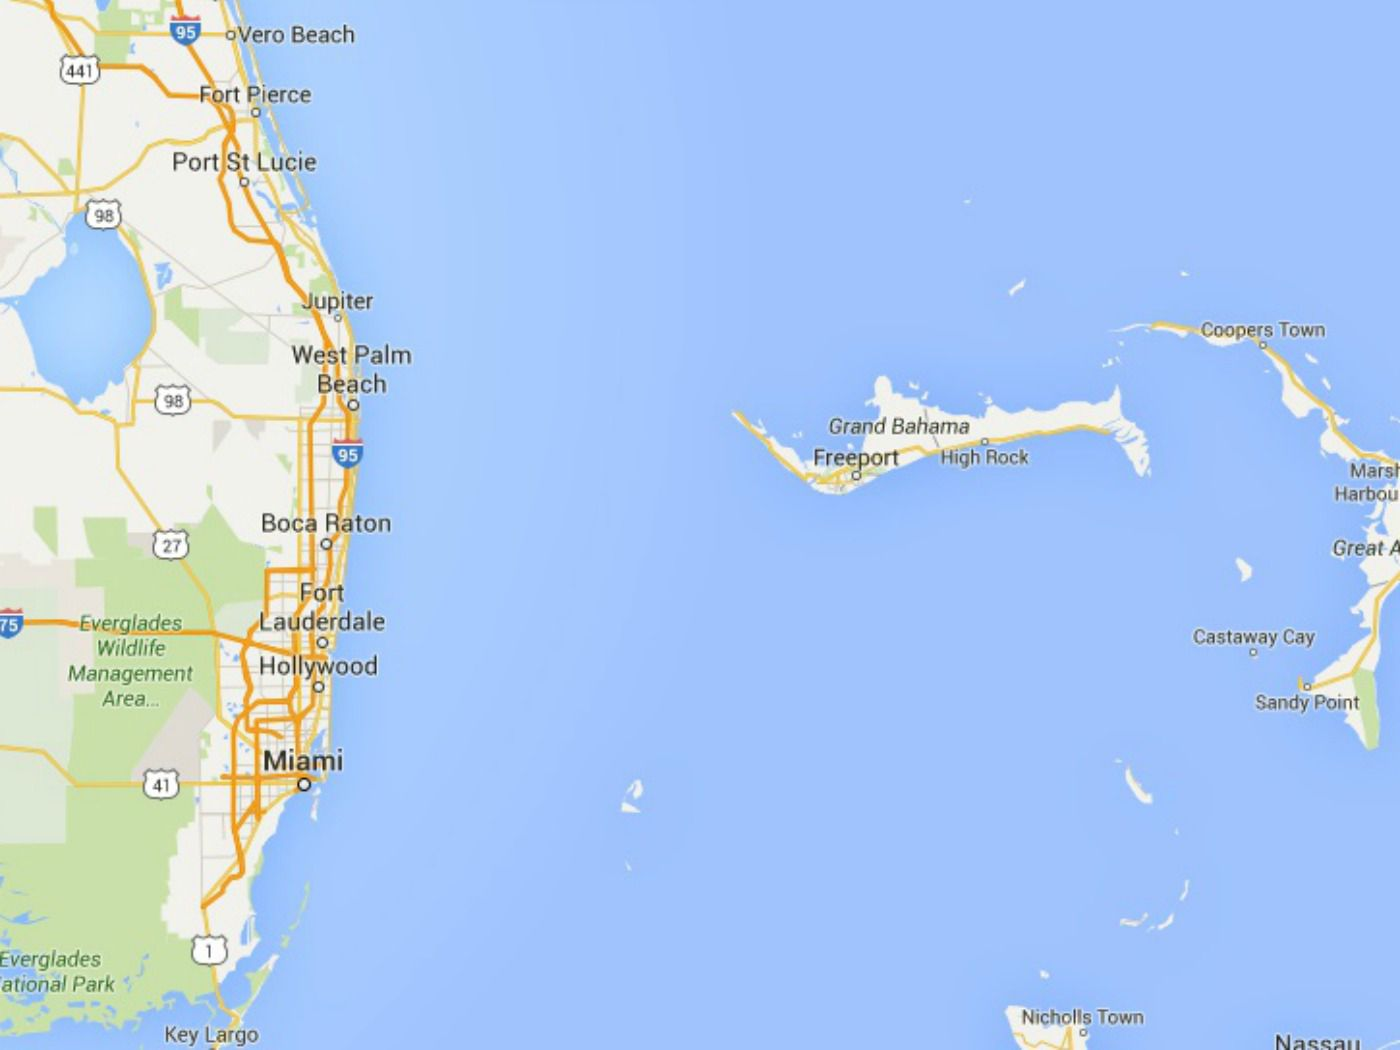 Map Of Southeast Florida Beaches.Maps Of Florida Orlando Tampa Miami Keys And More